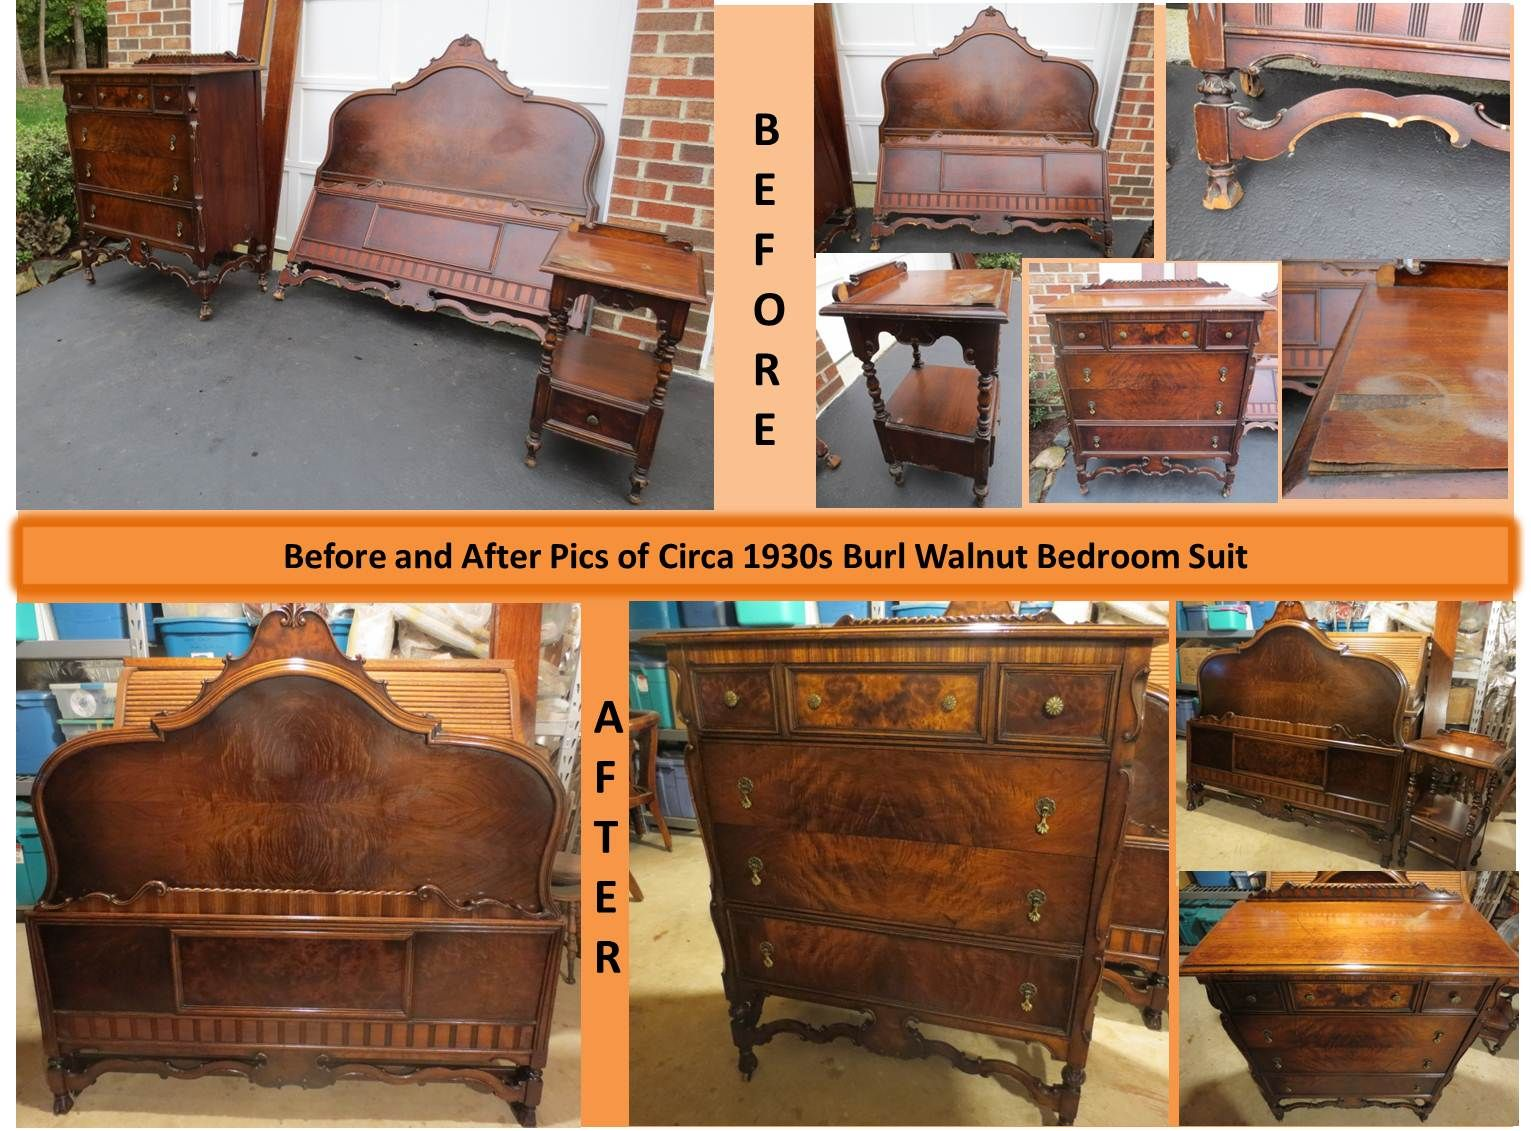 Antique furniture bedroom - 1920s Burl Walnut Bedroom Suite That I Restored Refinished Into Beautiful Bedroom Furniture